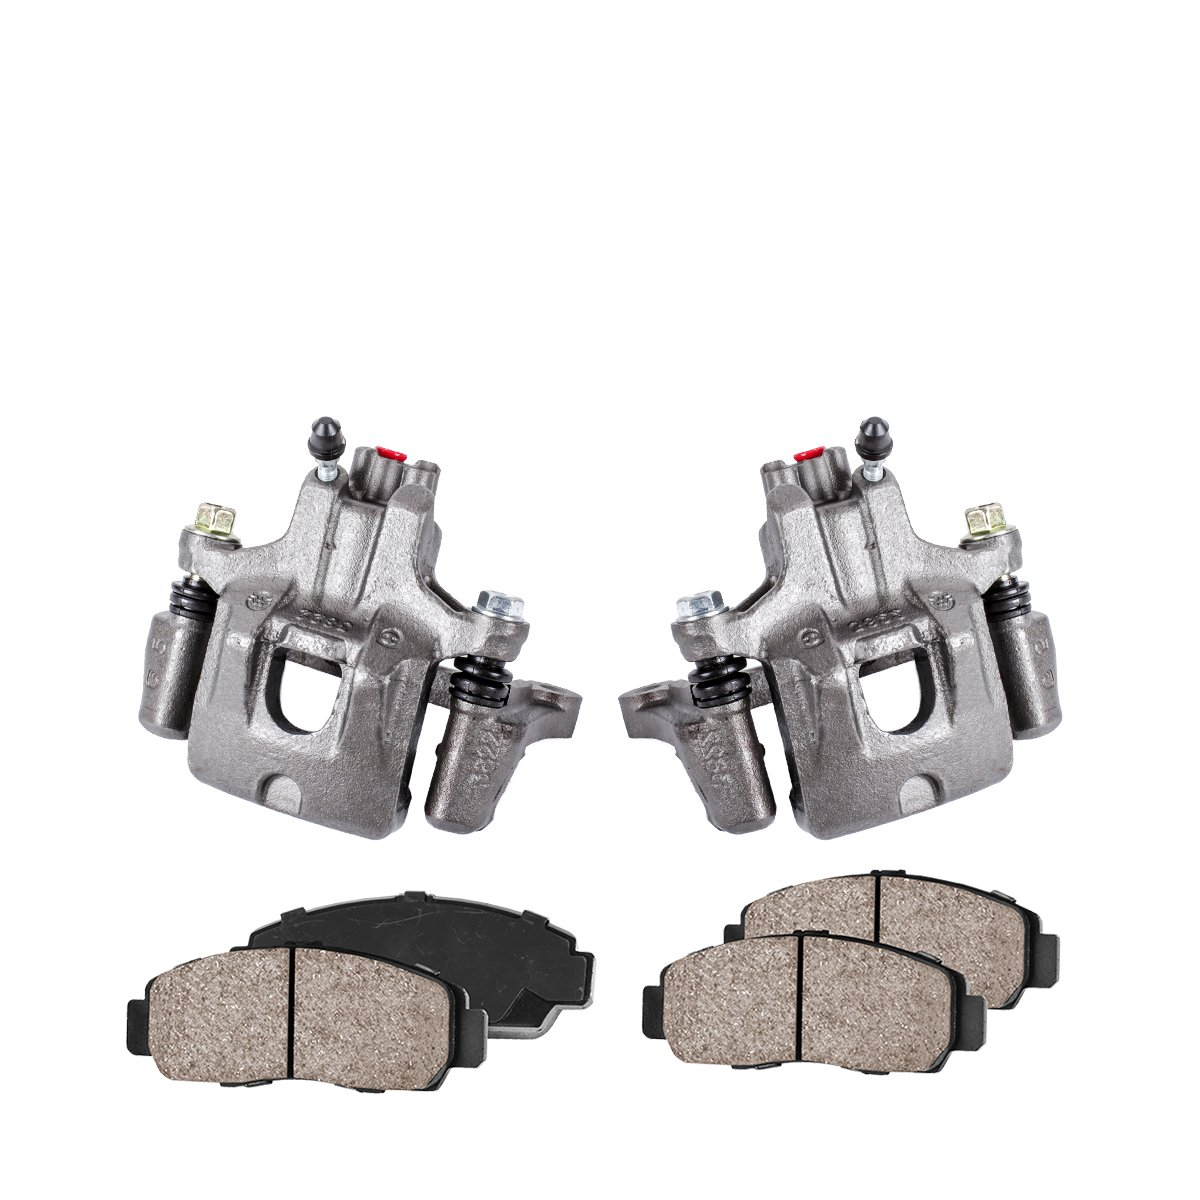 Callahan CCK04114 [2] REAR Premium Loaded Original Caliper Pair + Ceramic Brake Pads + Hardware Kit Callahan Brake Parts